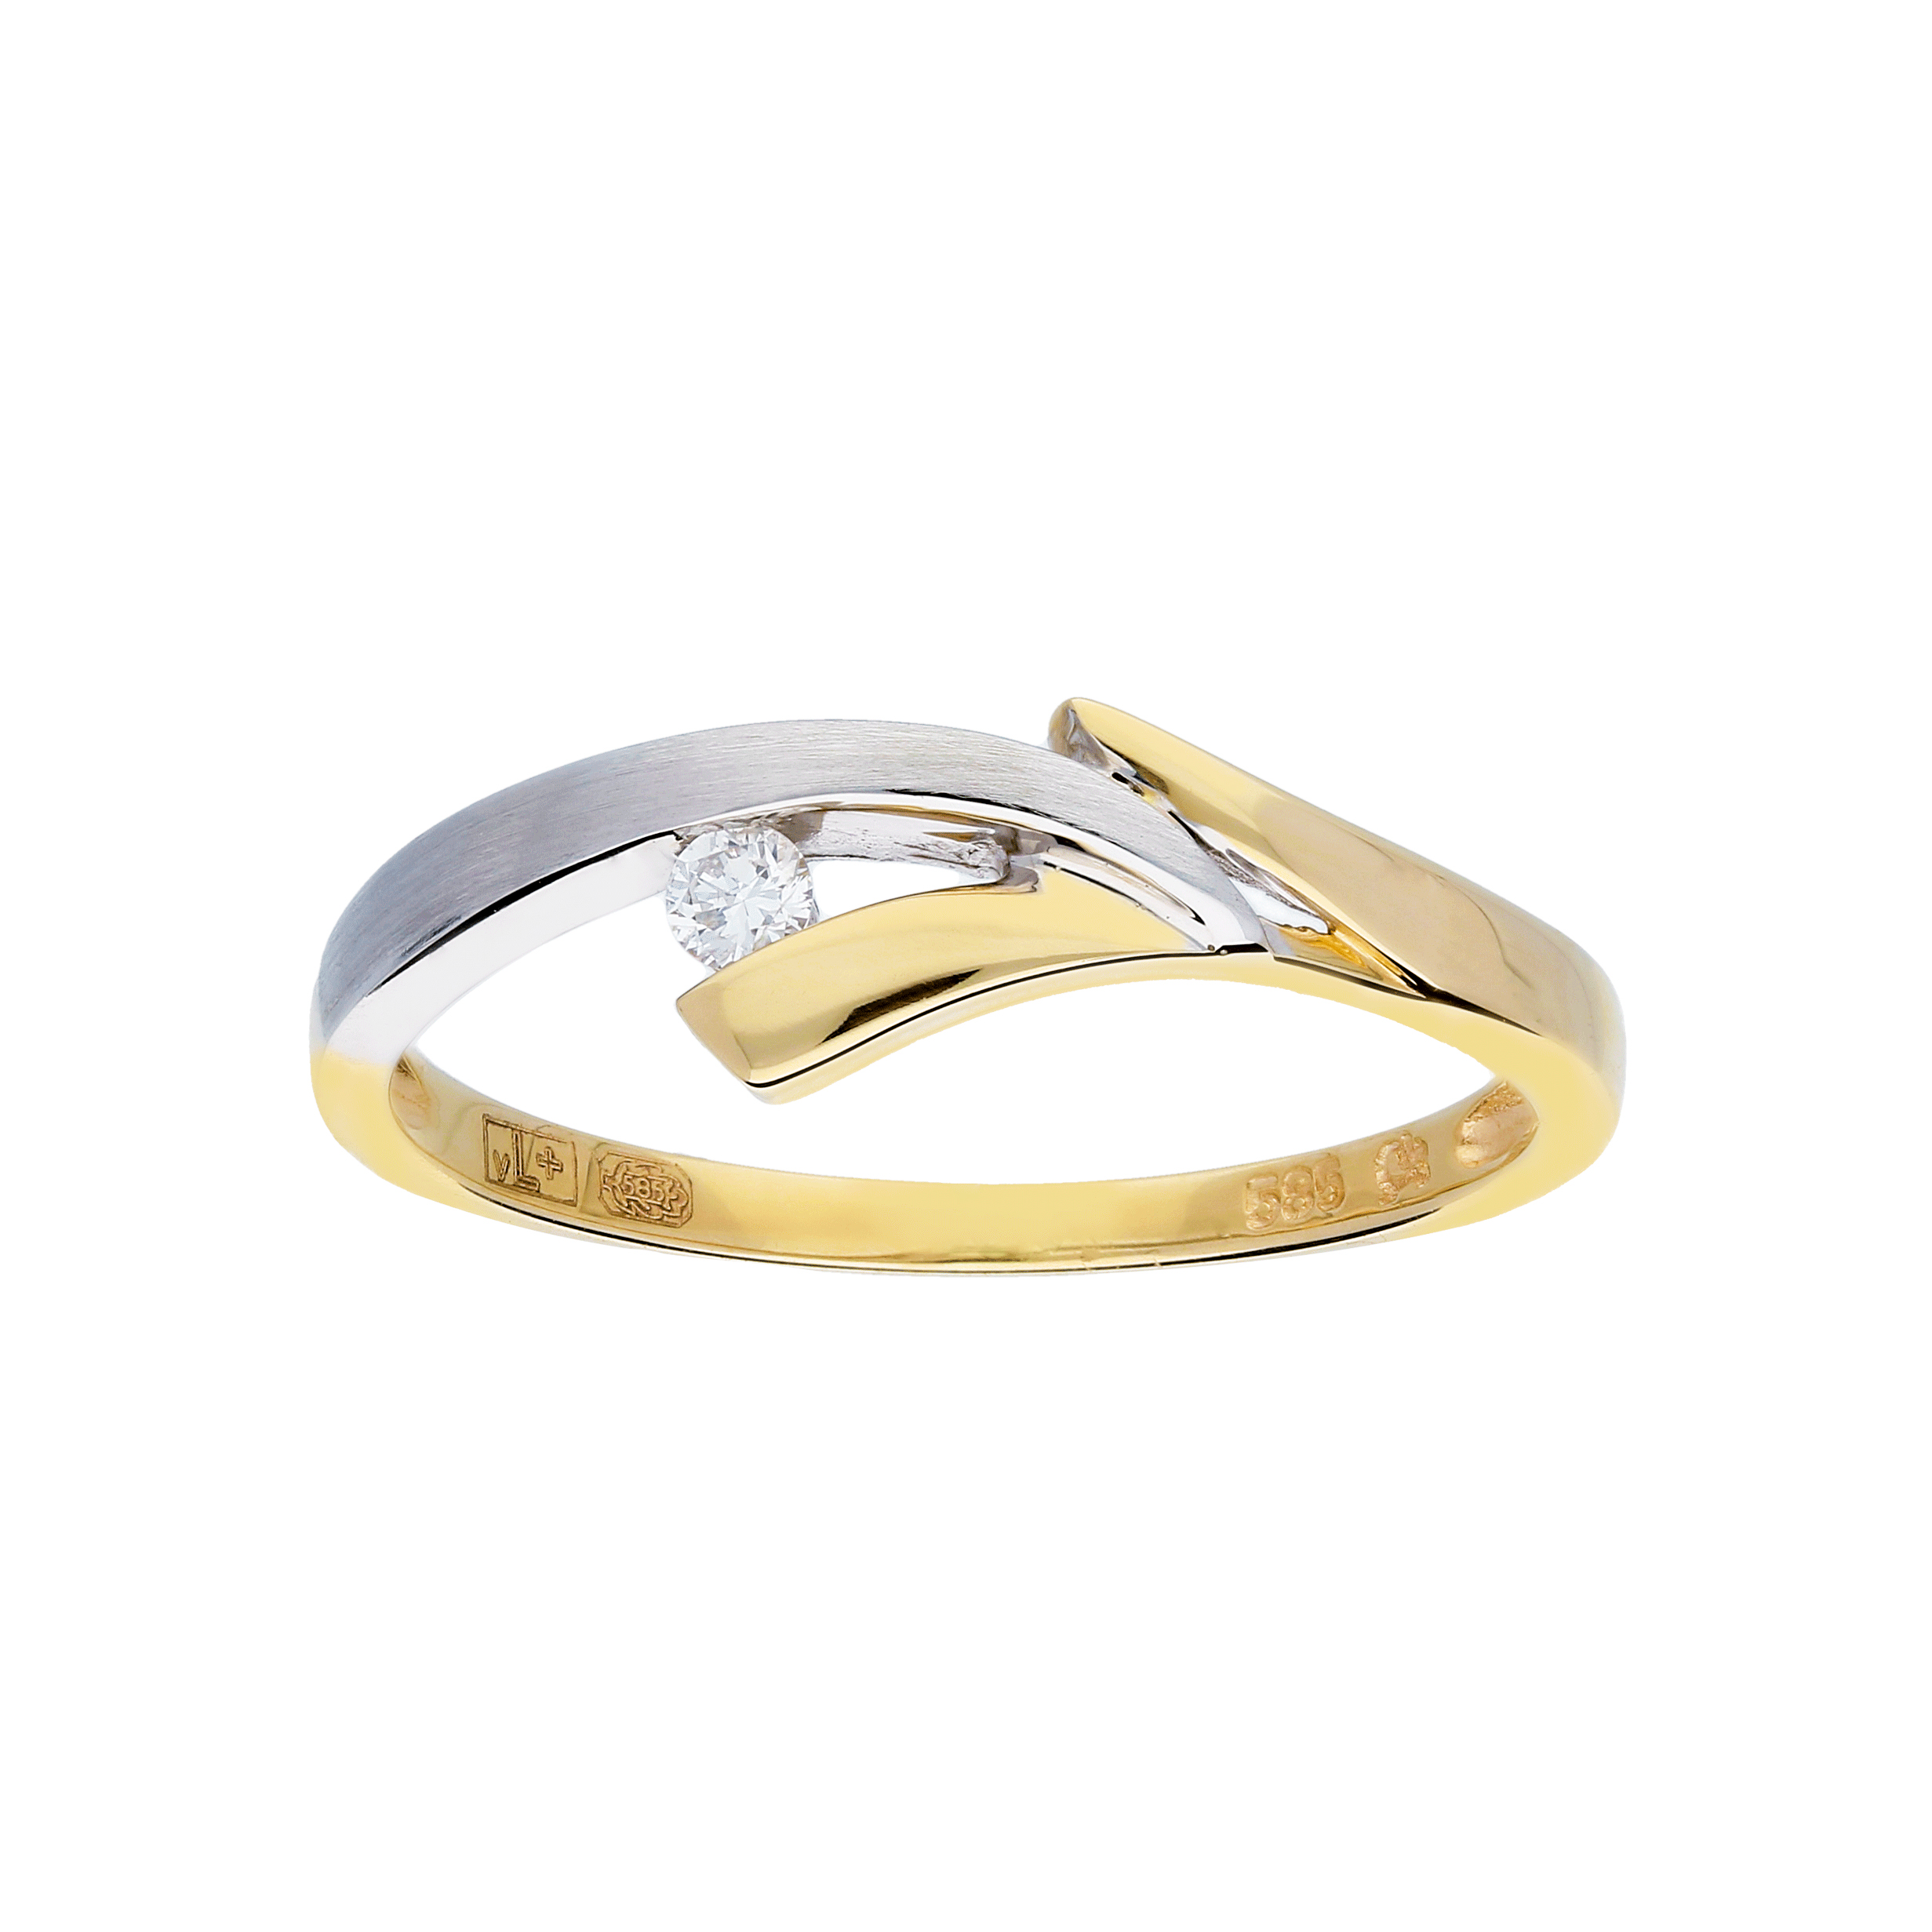 Glow Gouden Ring Bicolor Mat Glanzend Diamant 1 0.04ct G si 214.5251.52